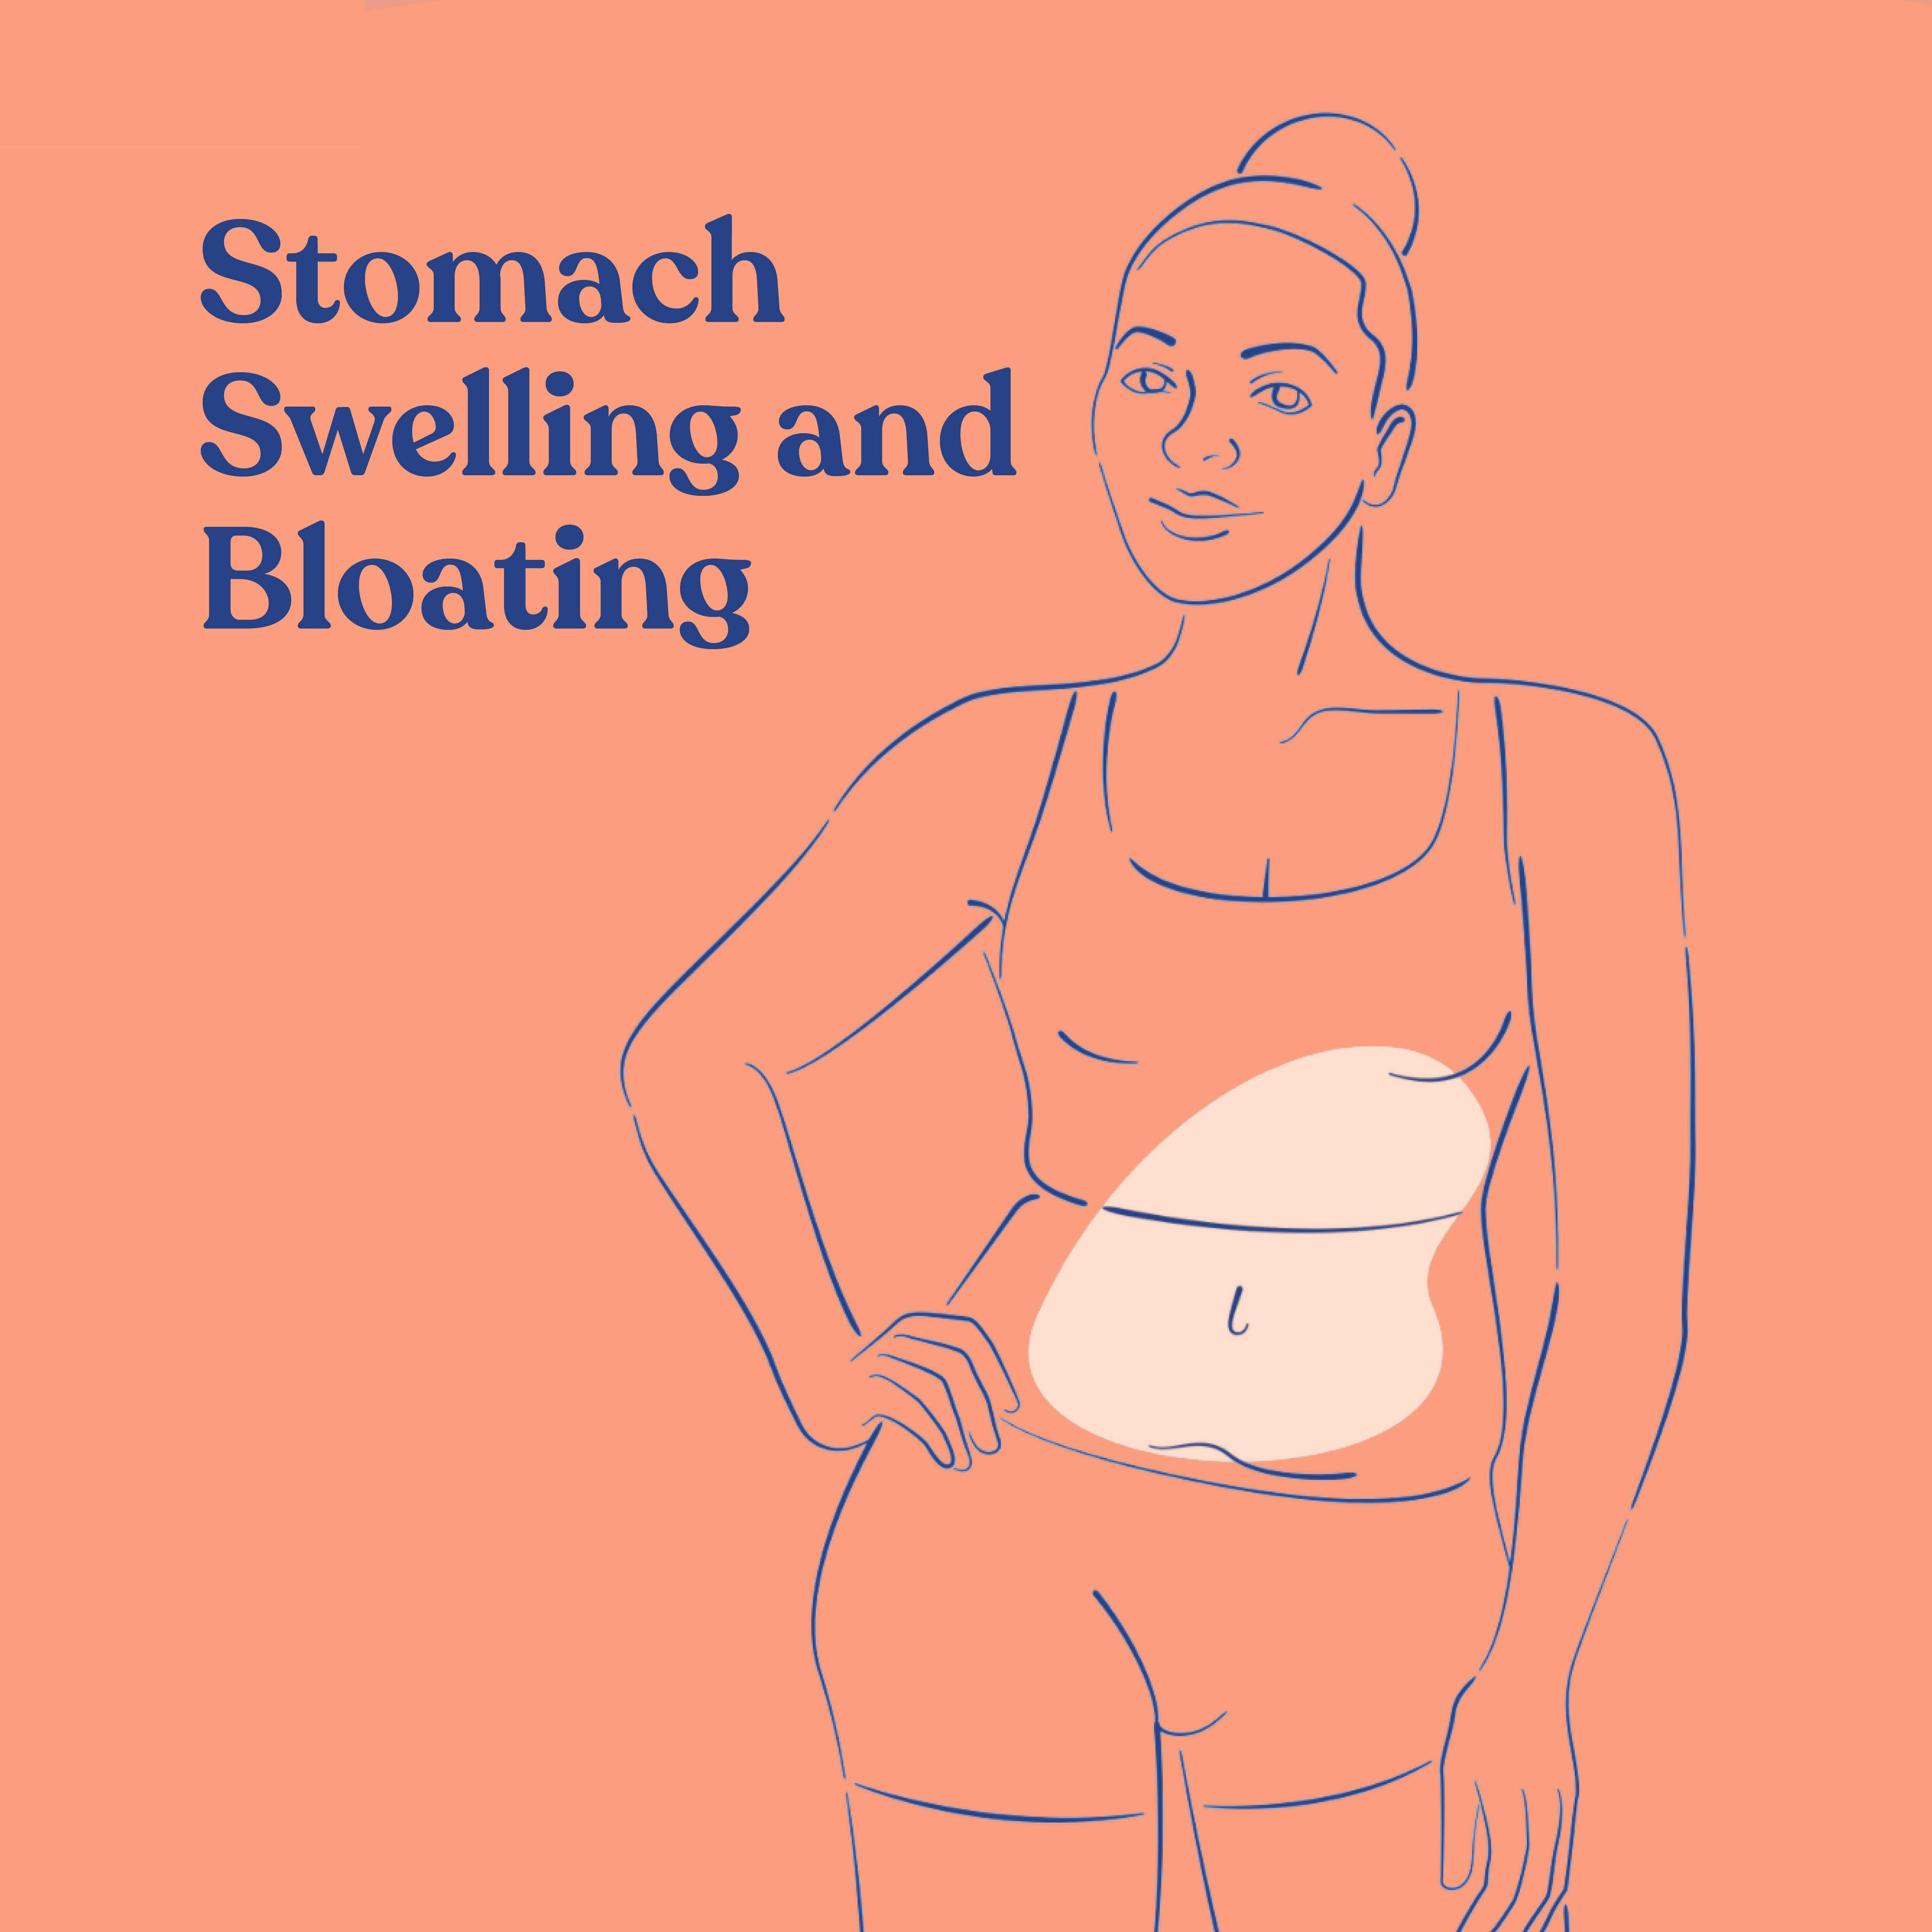 Stomach swelling and bloating, Symptoms treated by Acessa Procedure